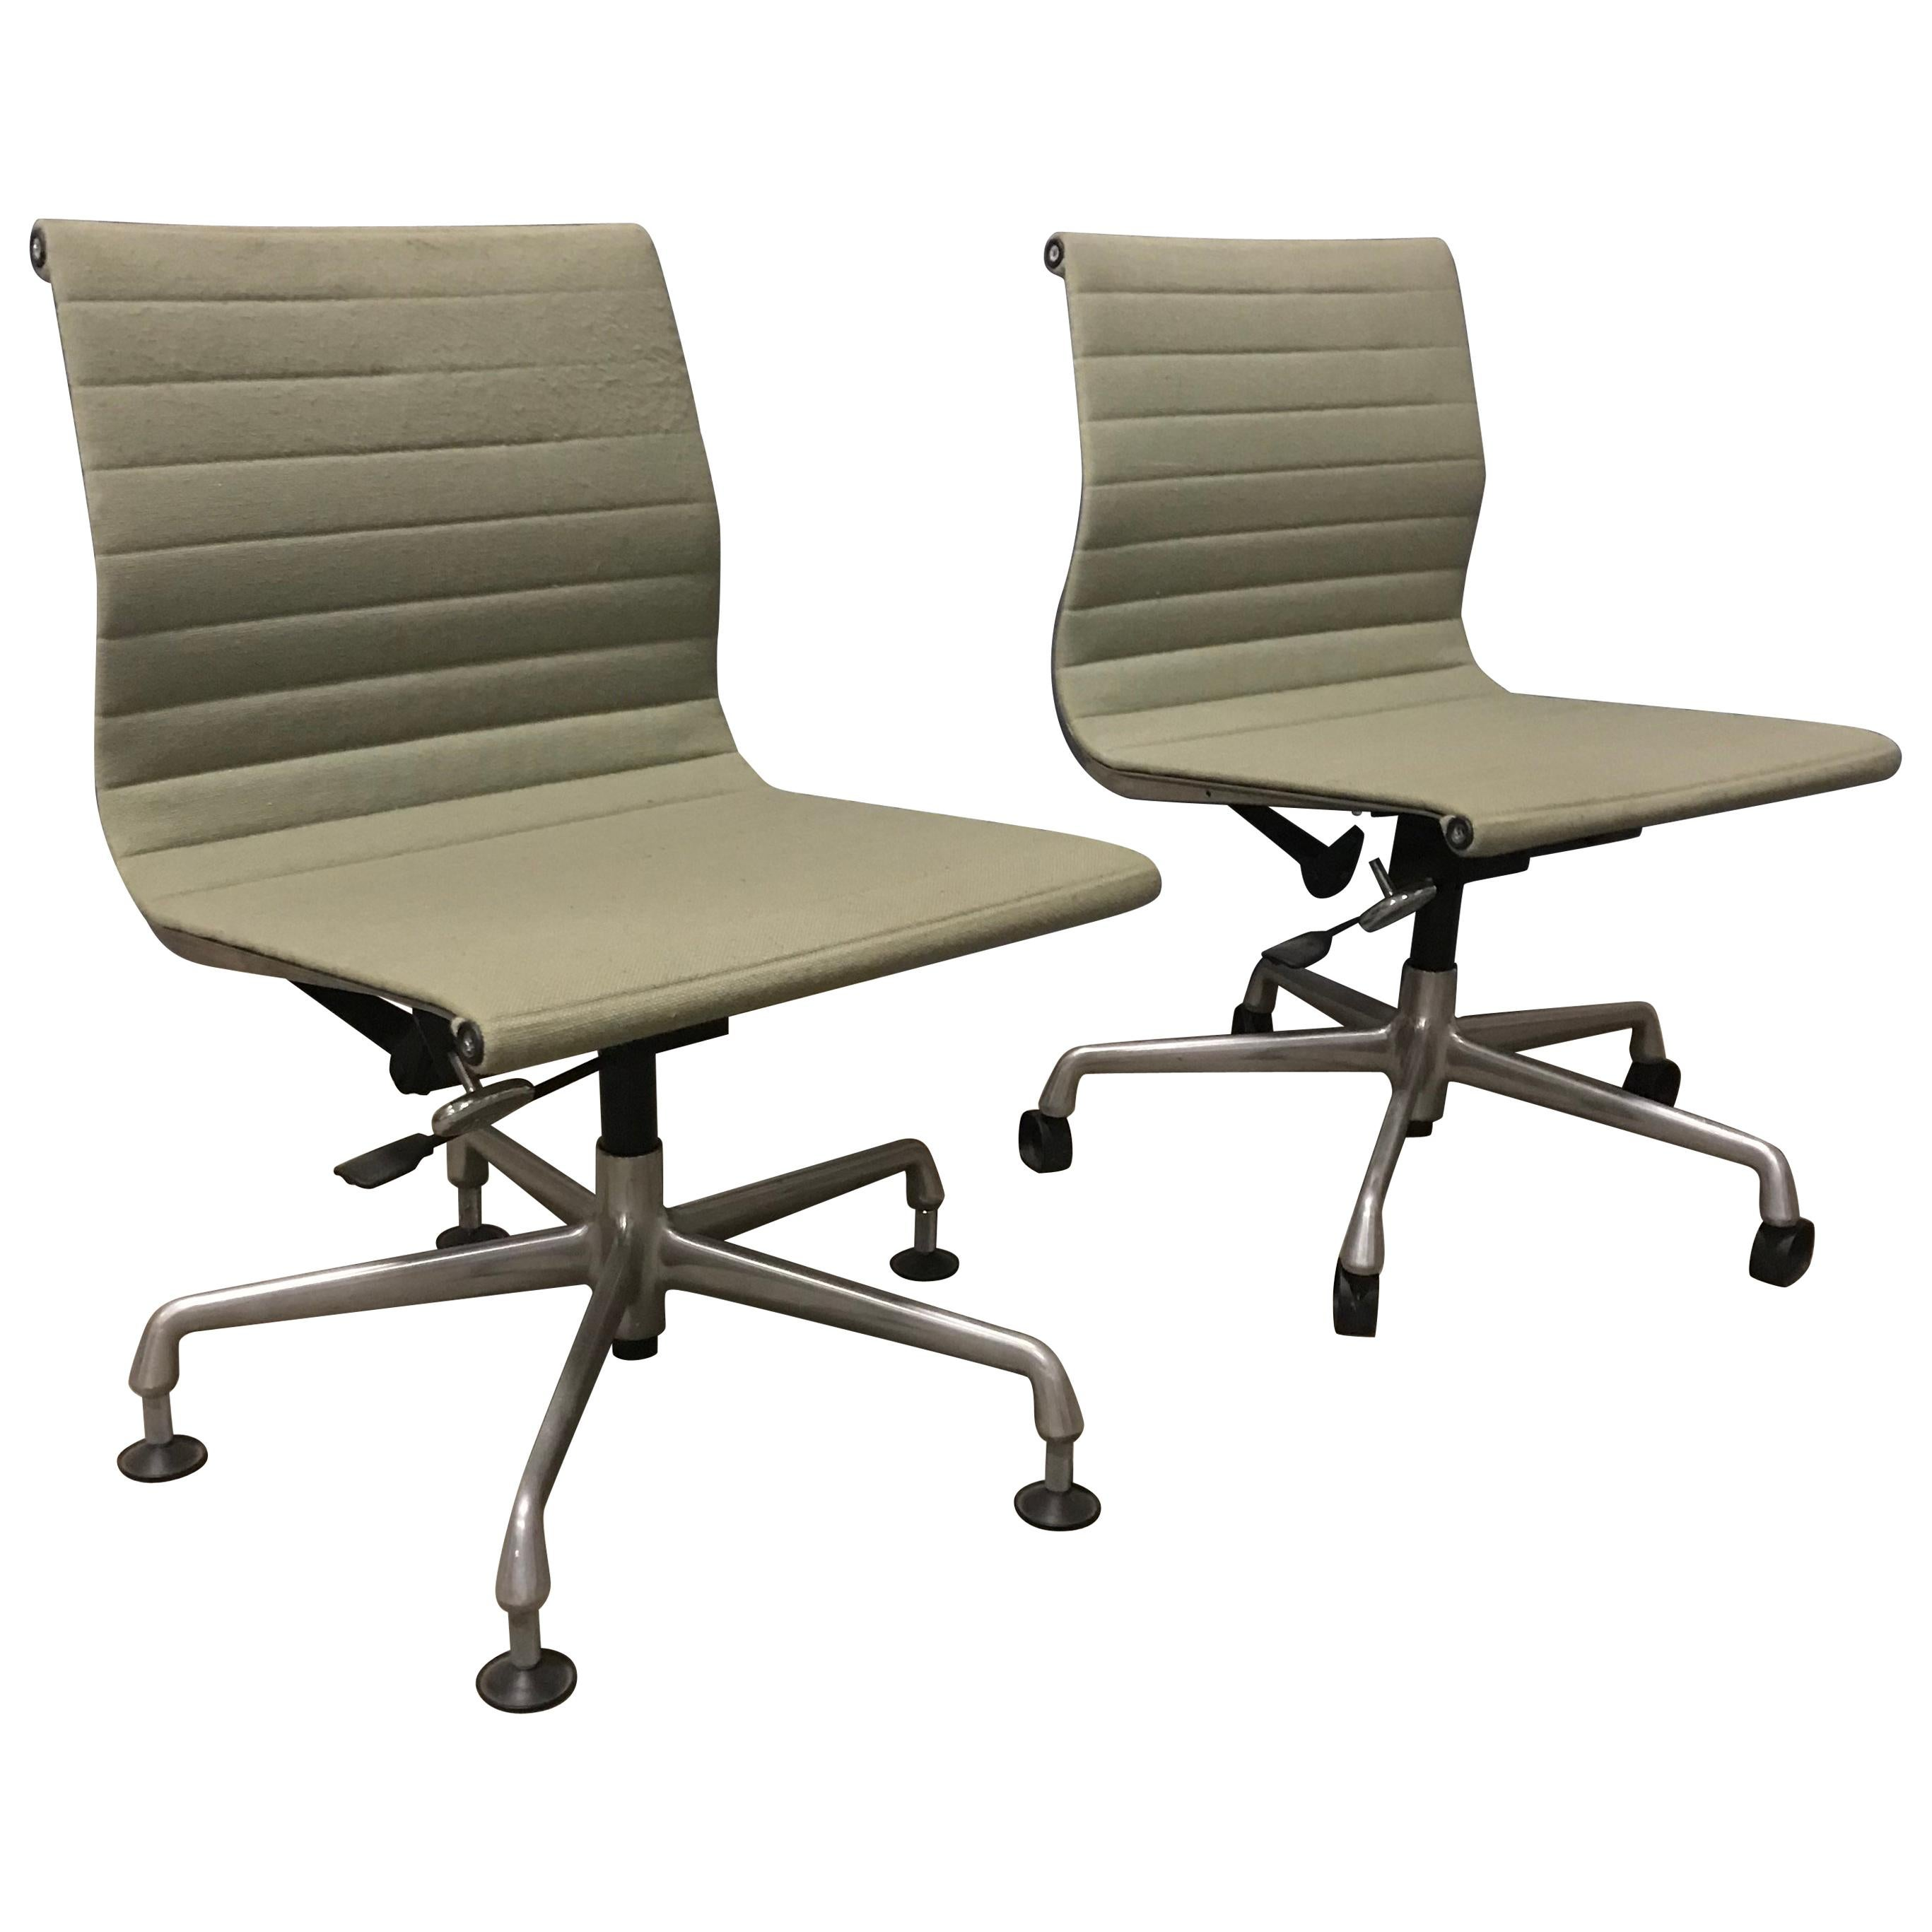 Restaurant Furniture For Less Fabric Office Chairs With Arms Task Chair Burgundy Midback Fabric